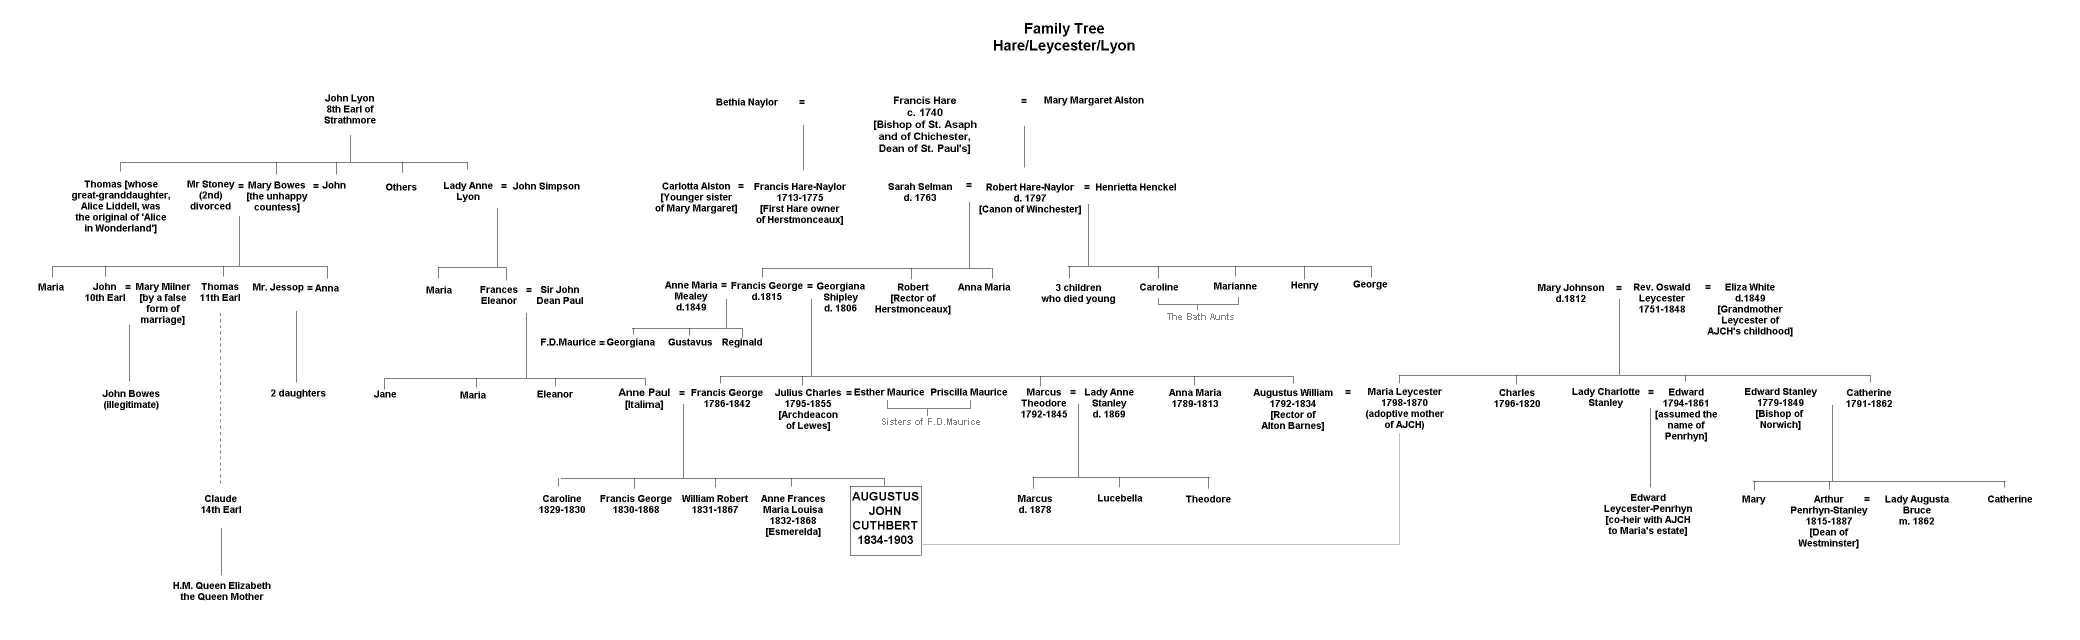 Family Tree of HareLeycester Viking Gods Family Tree